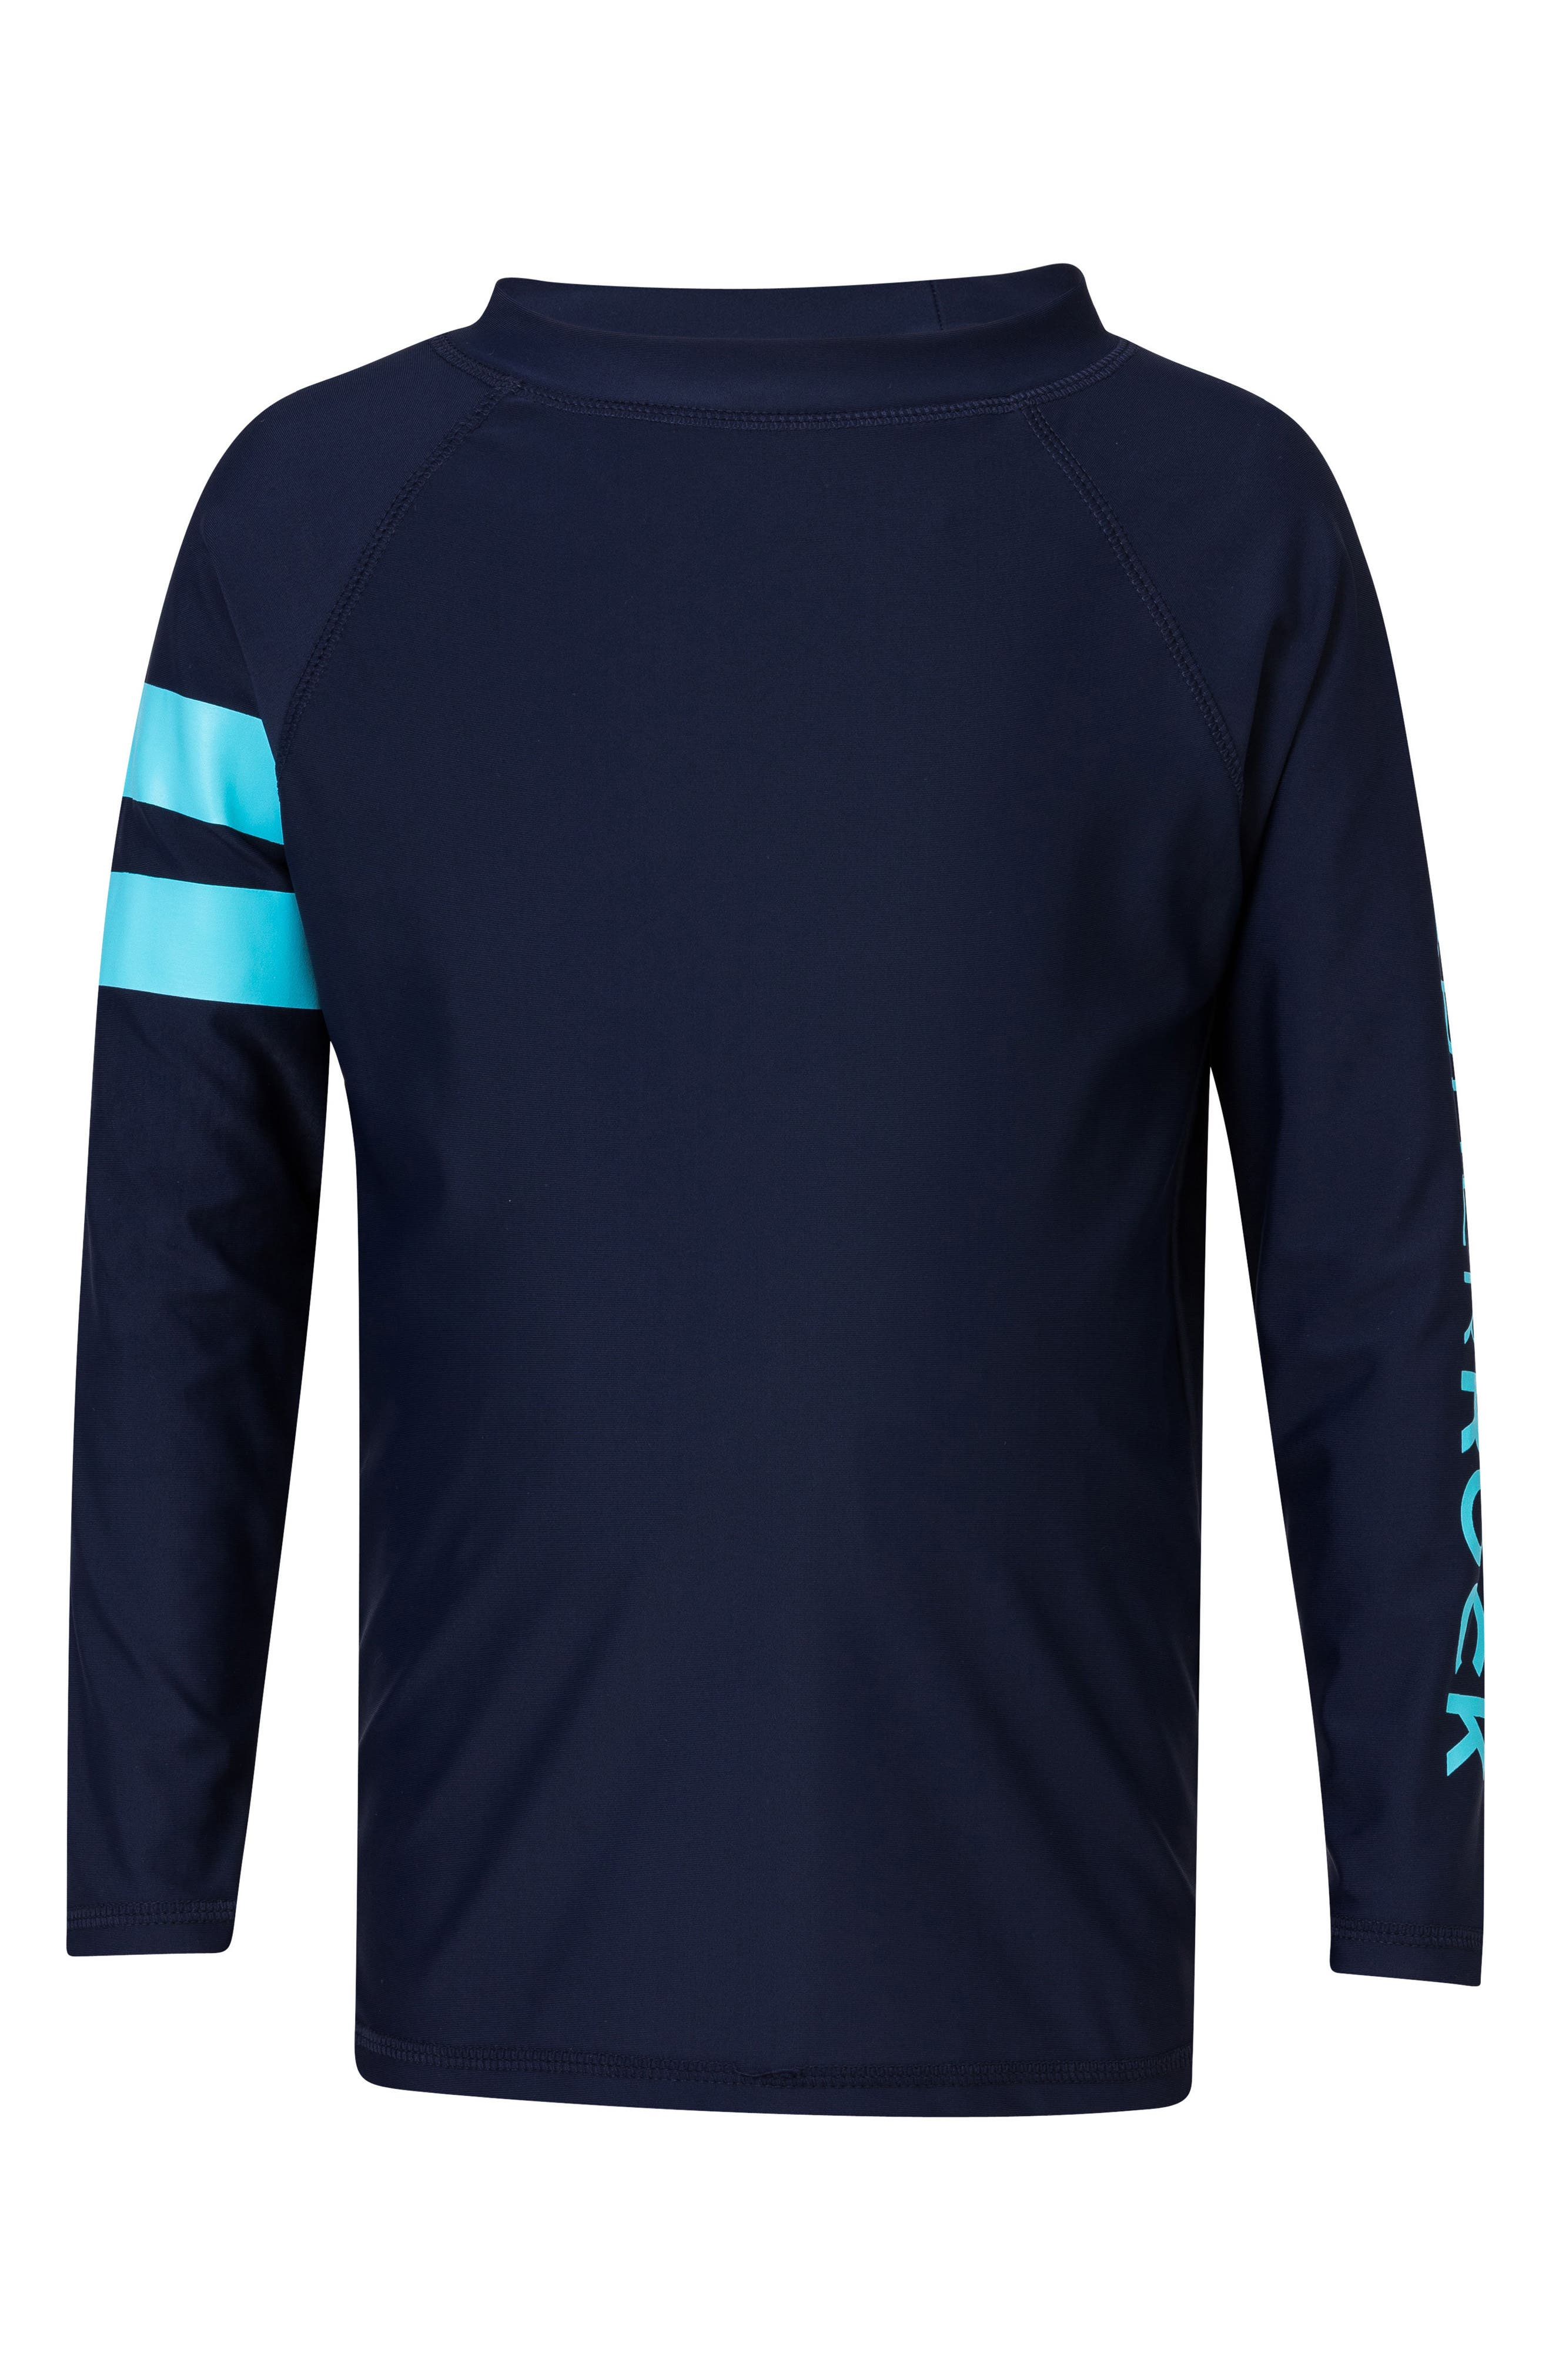 Raglan Long Sleeve Rashguard,                         Main,                         color, NAVY/ LIGHT BLUE STRIPE